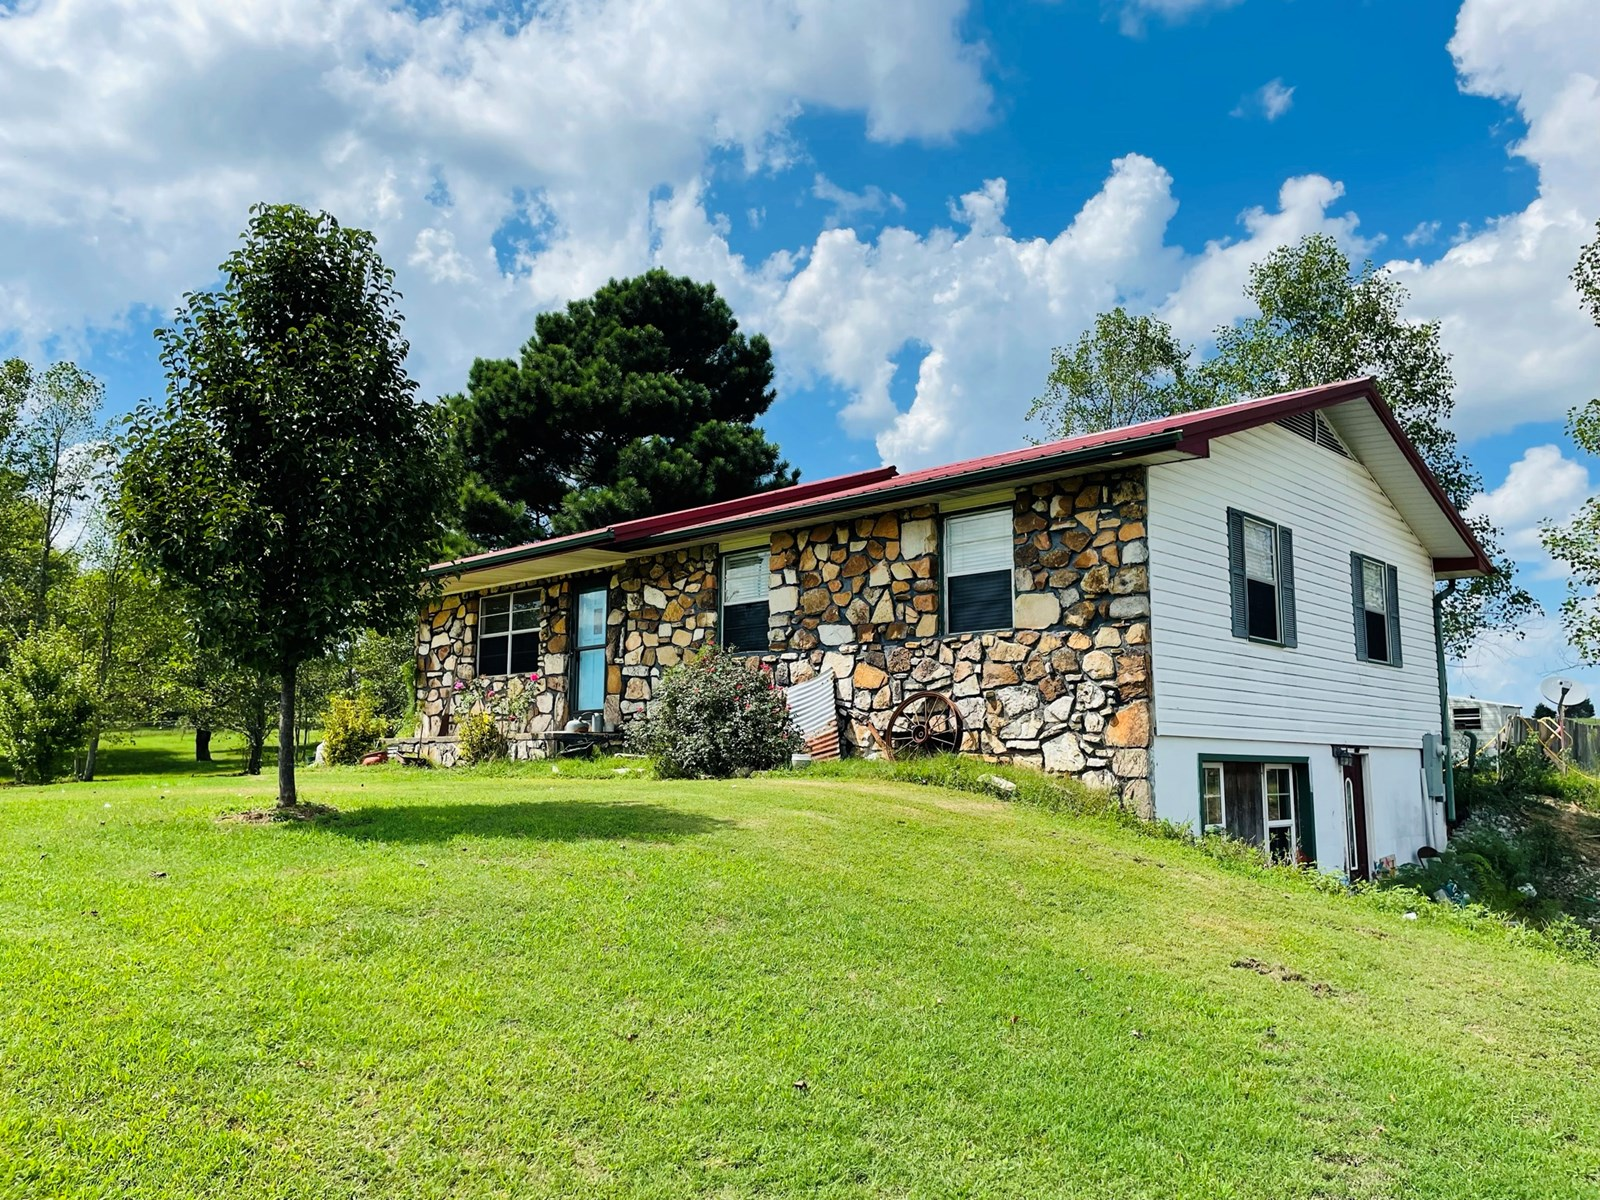 ROCK HOME AND FARM FOR SALE IN NORTH CENTRAL, ARKANSAS